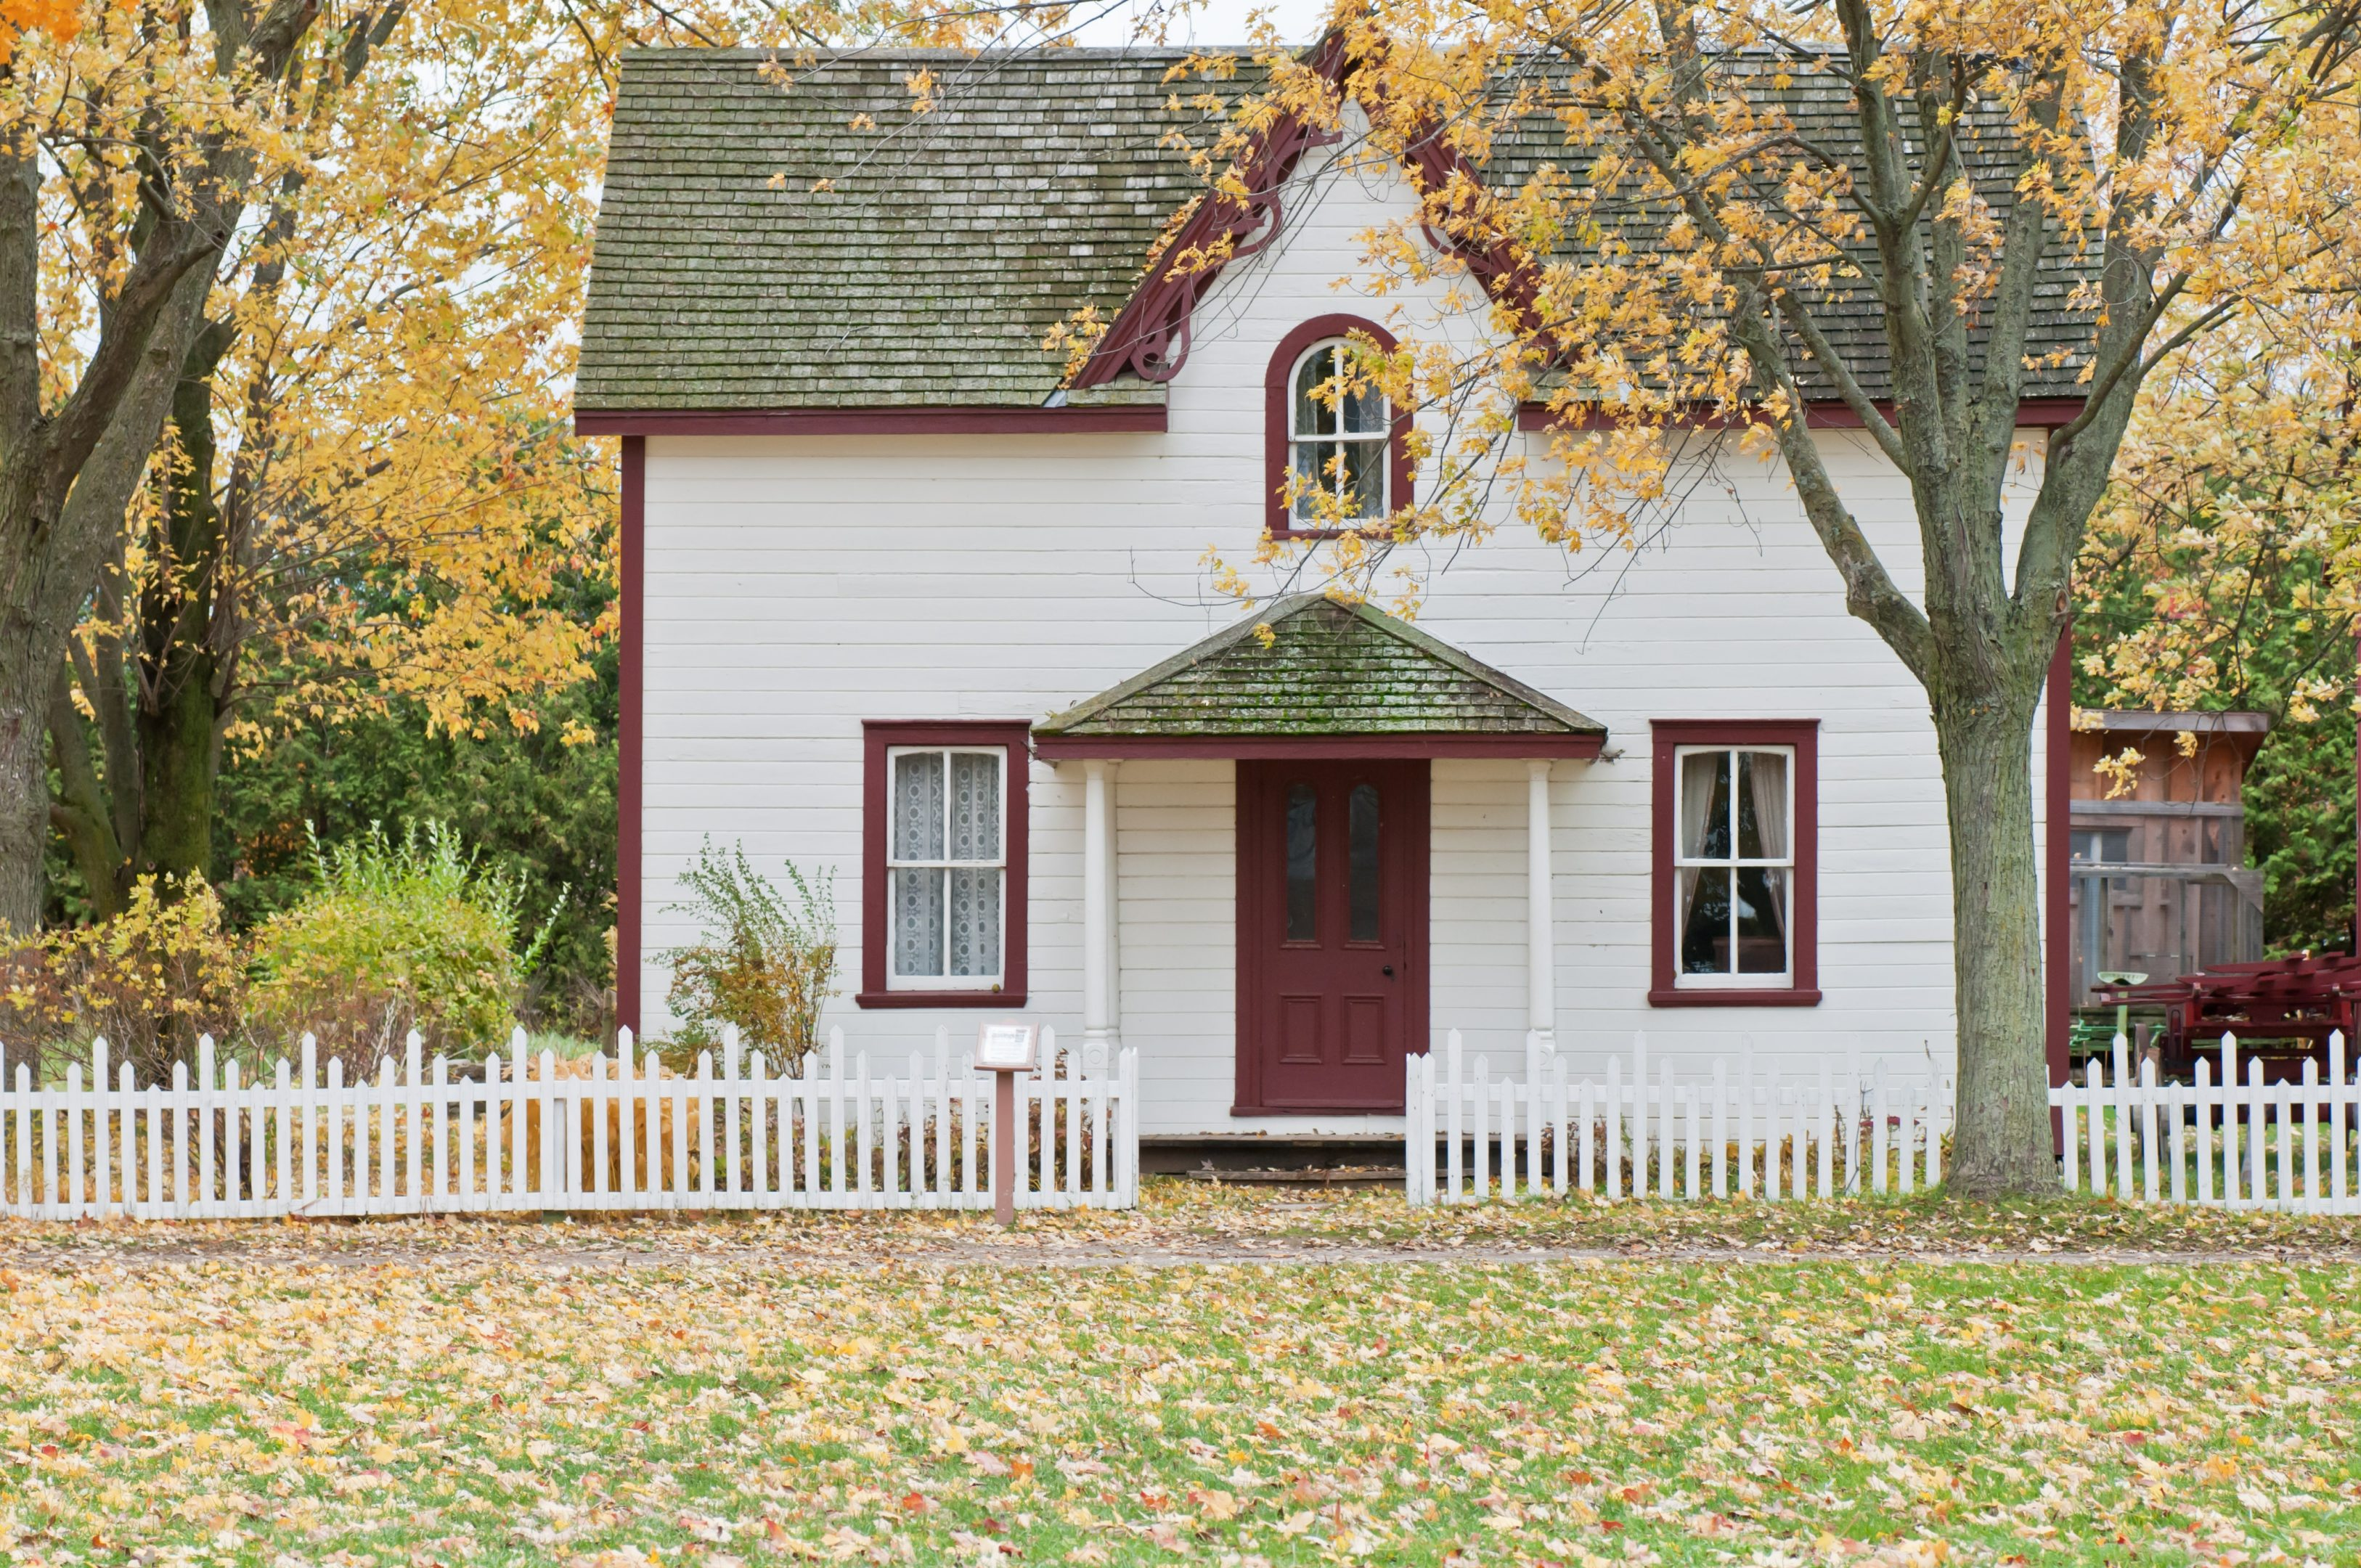 3 Aspects of Your Home to Change Before You Sell